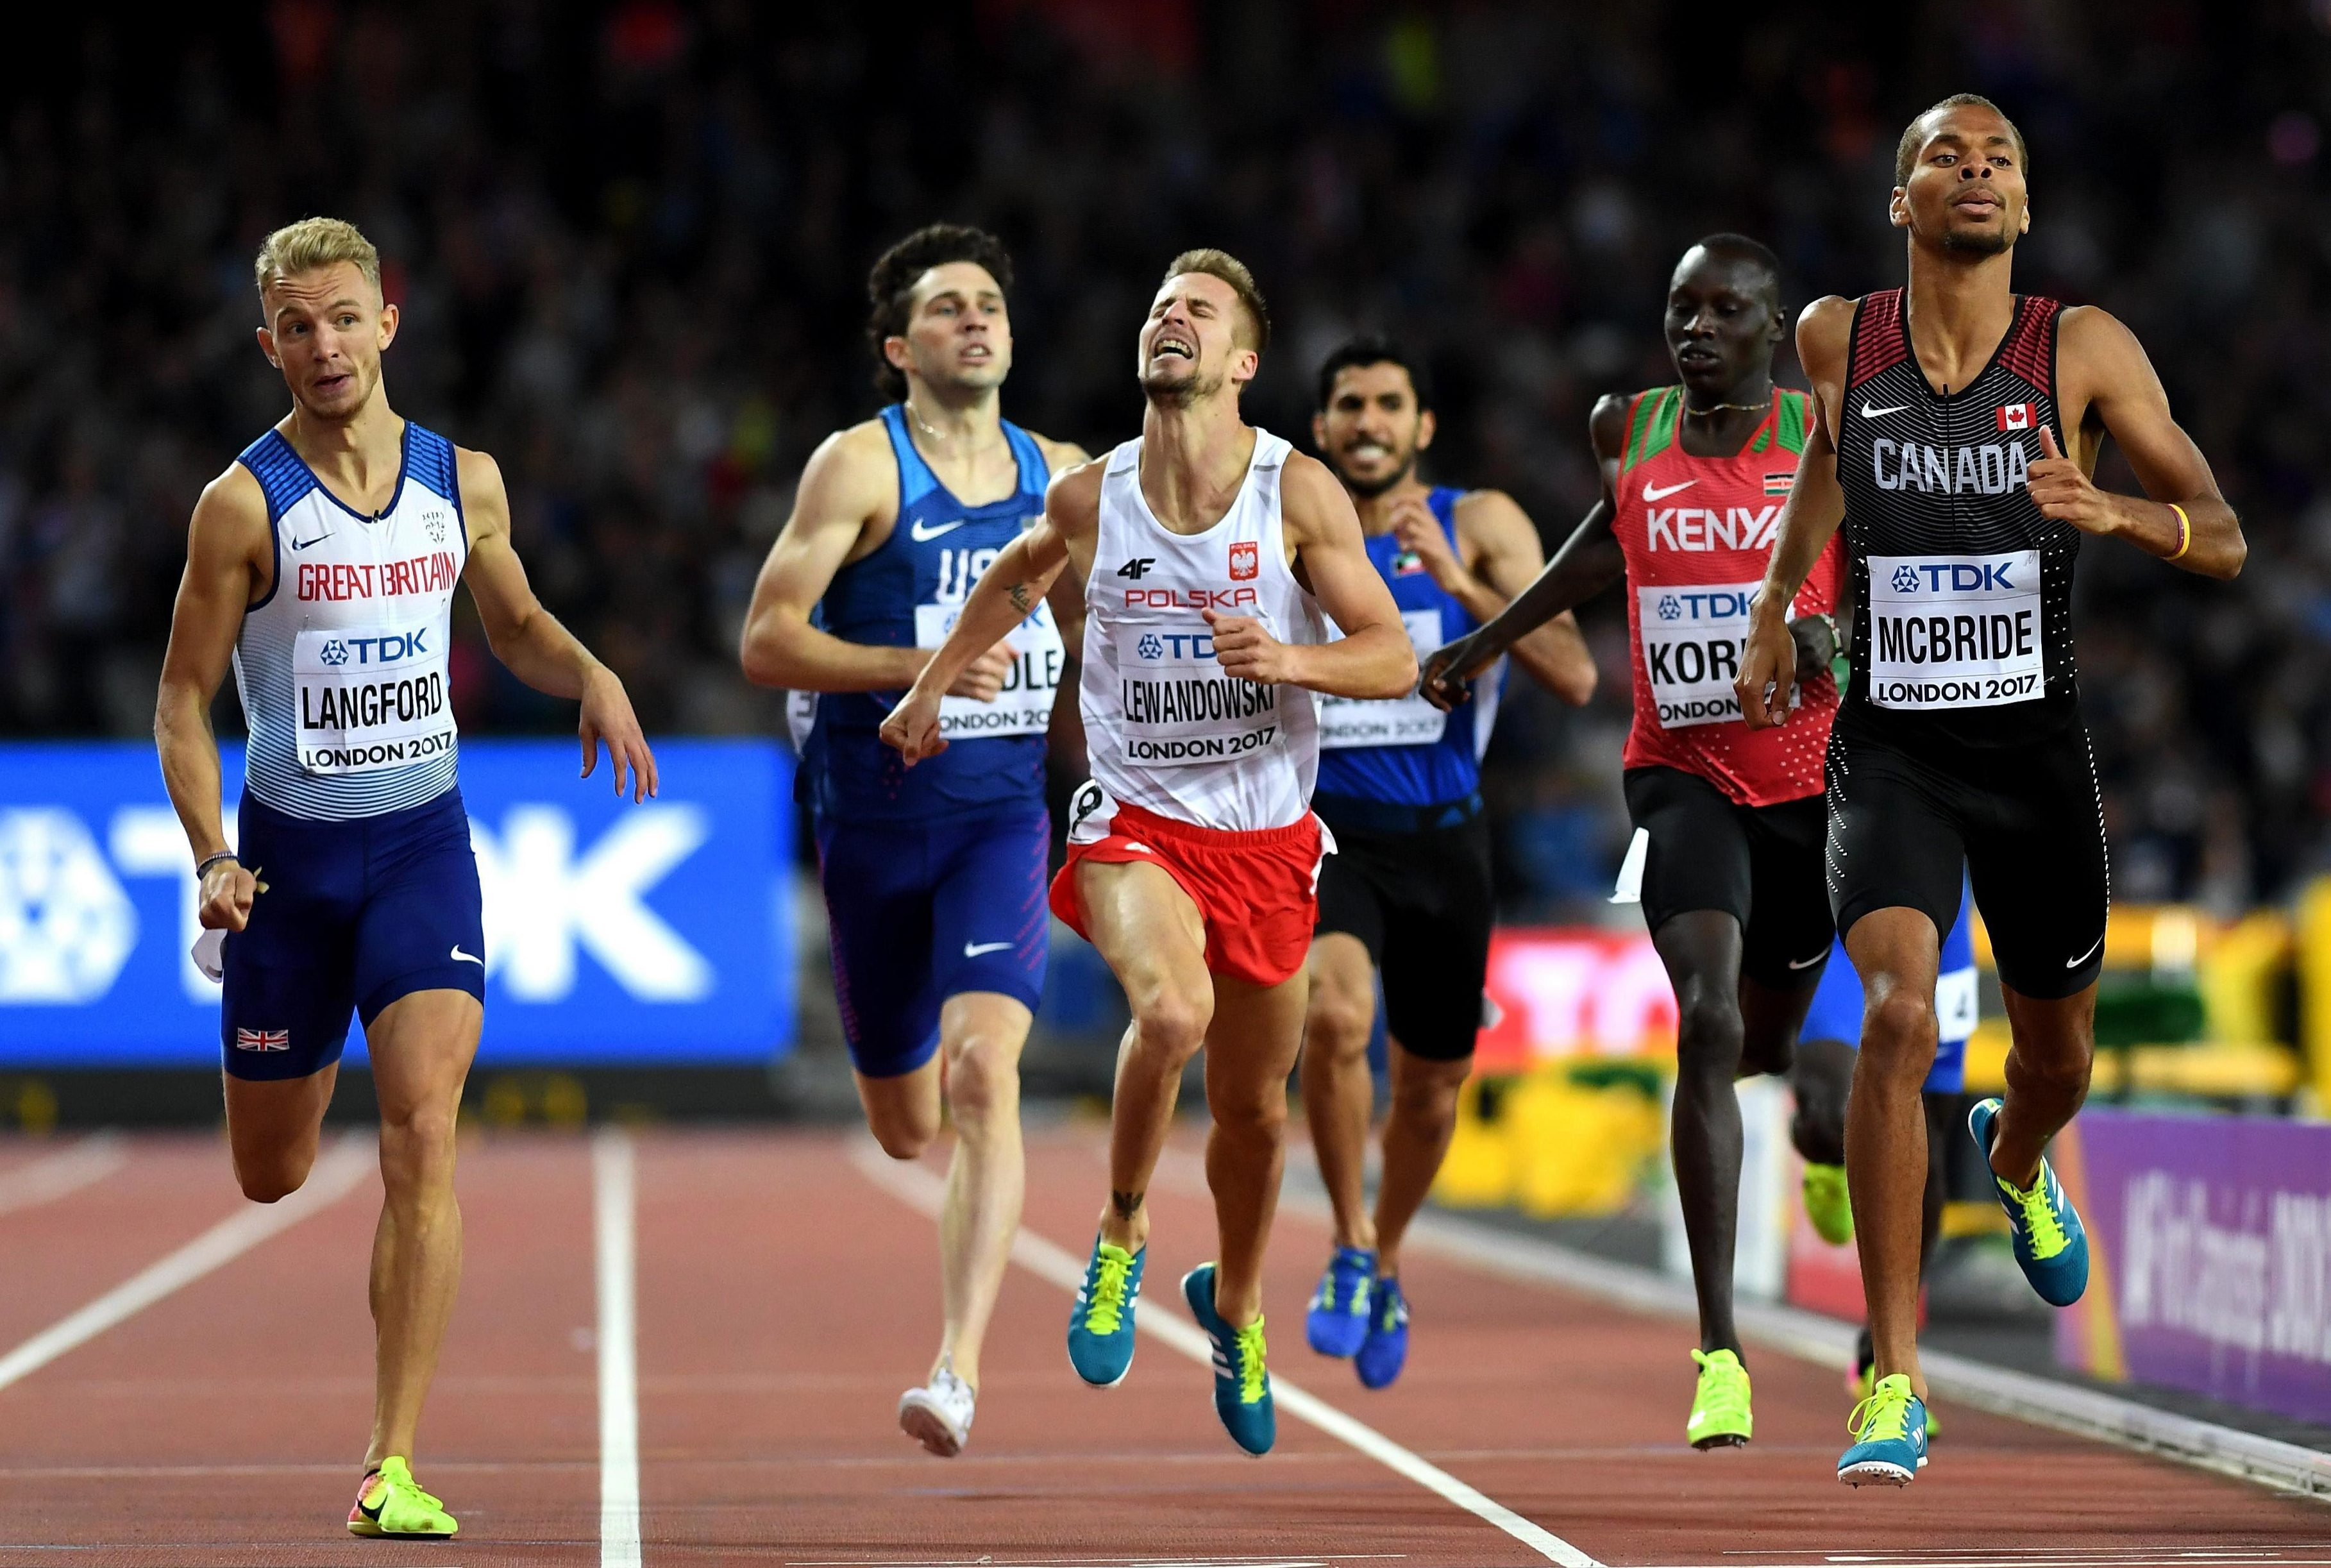 Kyle Langford produced a thrilling finish to overtake his rivals and book a place in the final